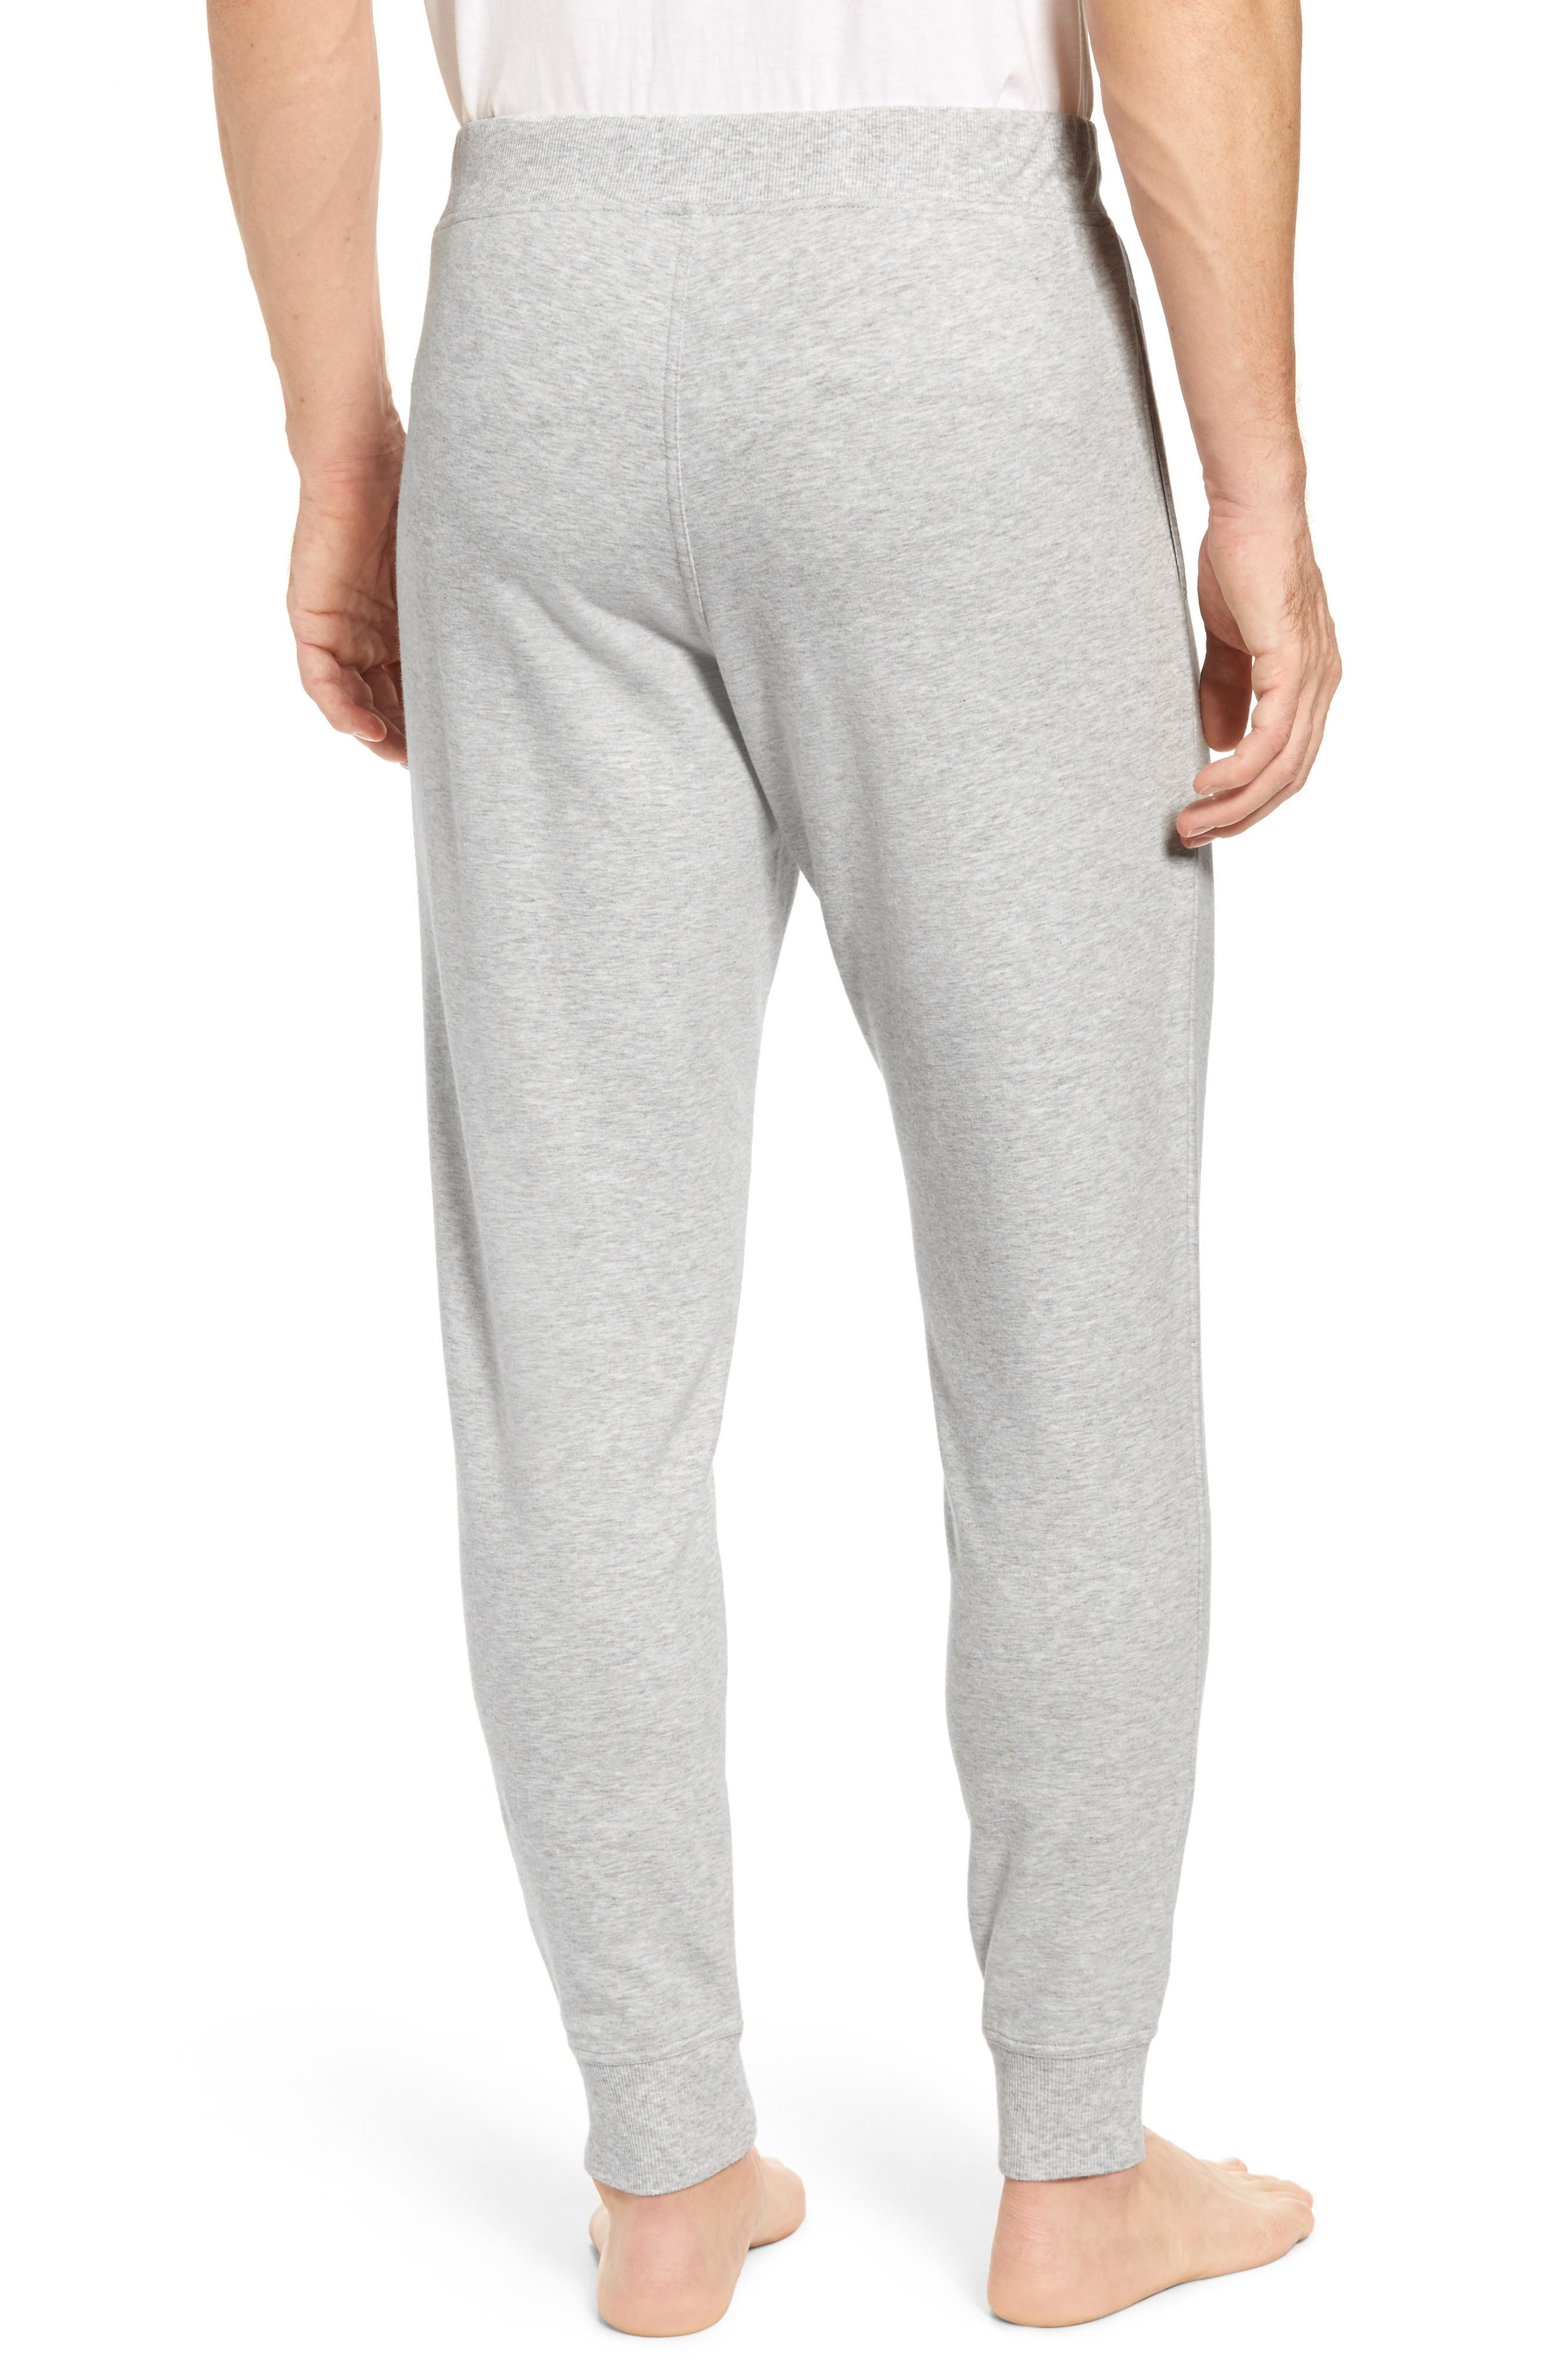 Jakob Lounge Pants,                             Alternate thumbnail 5, color,